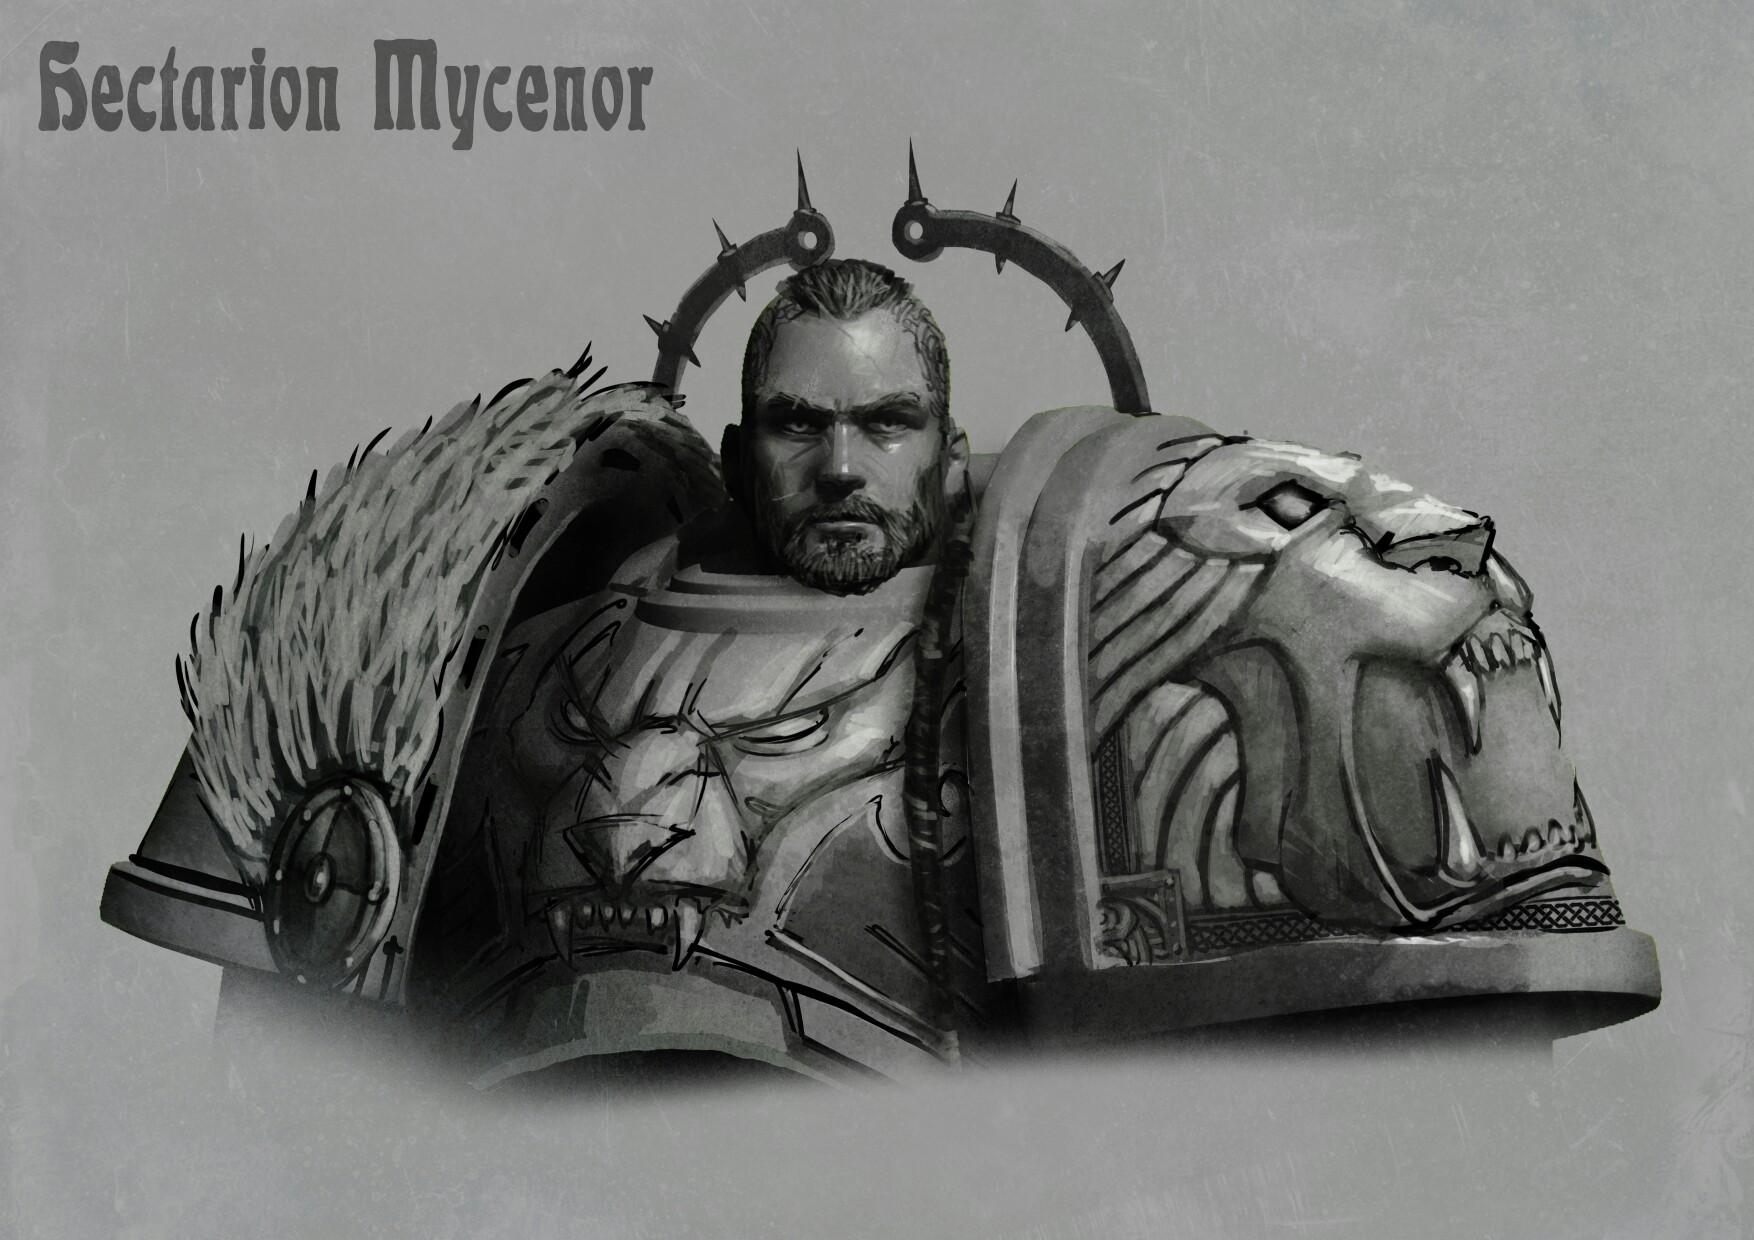 Hectarion Mycenor | The Brotherhood of the Lost Wiki